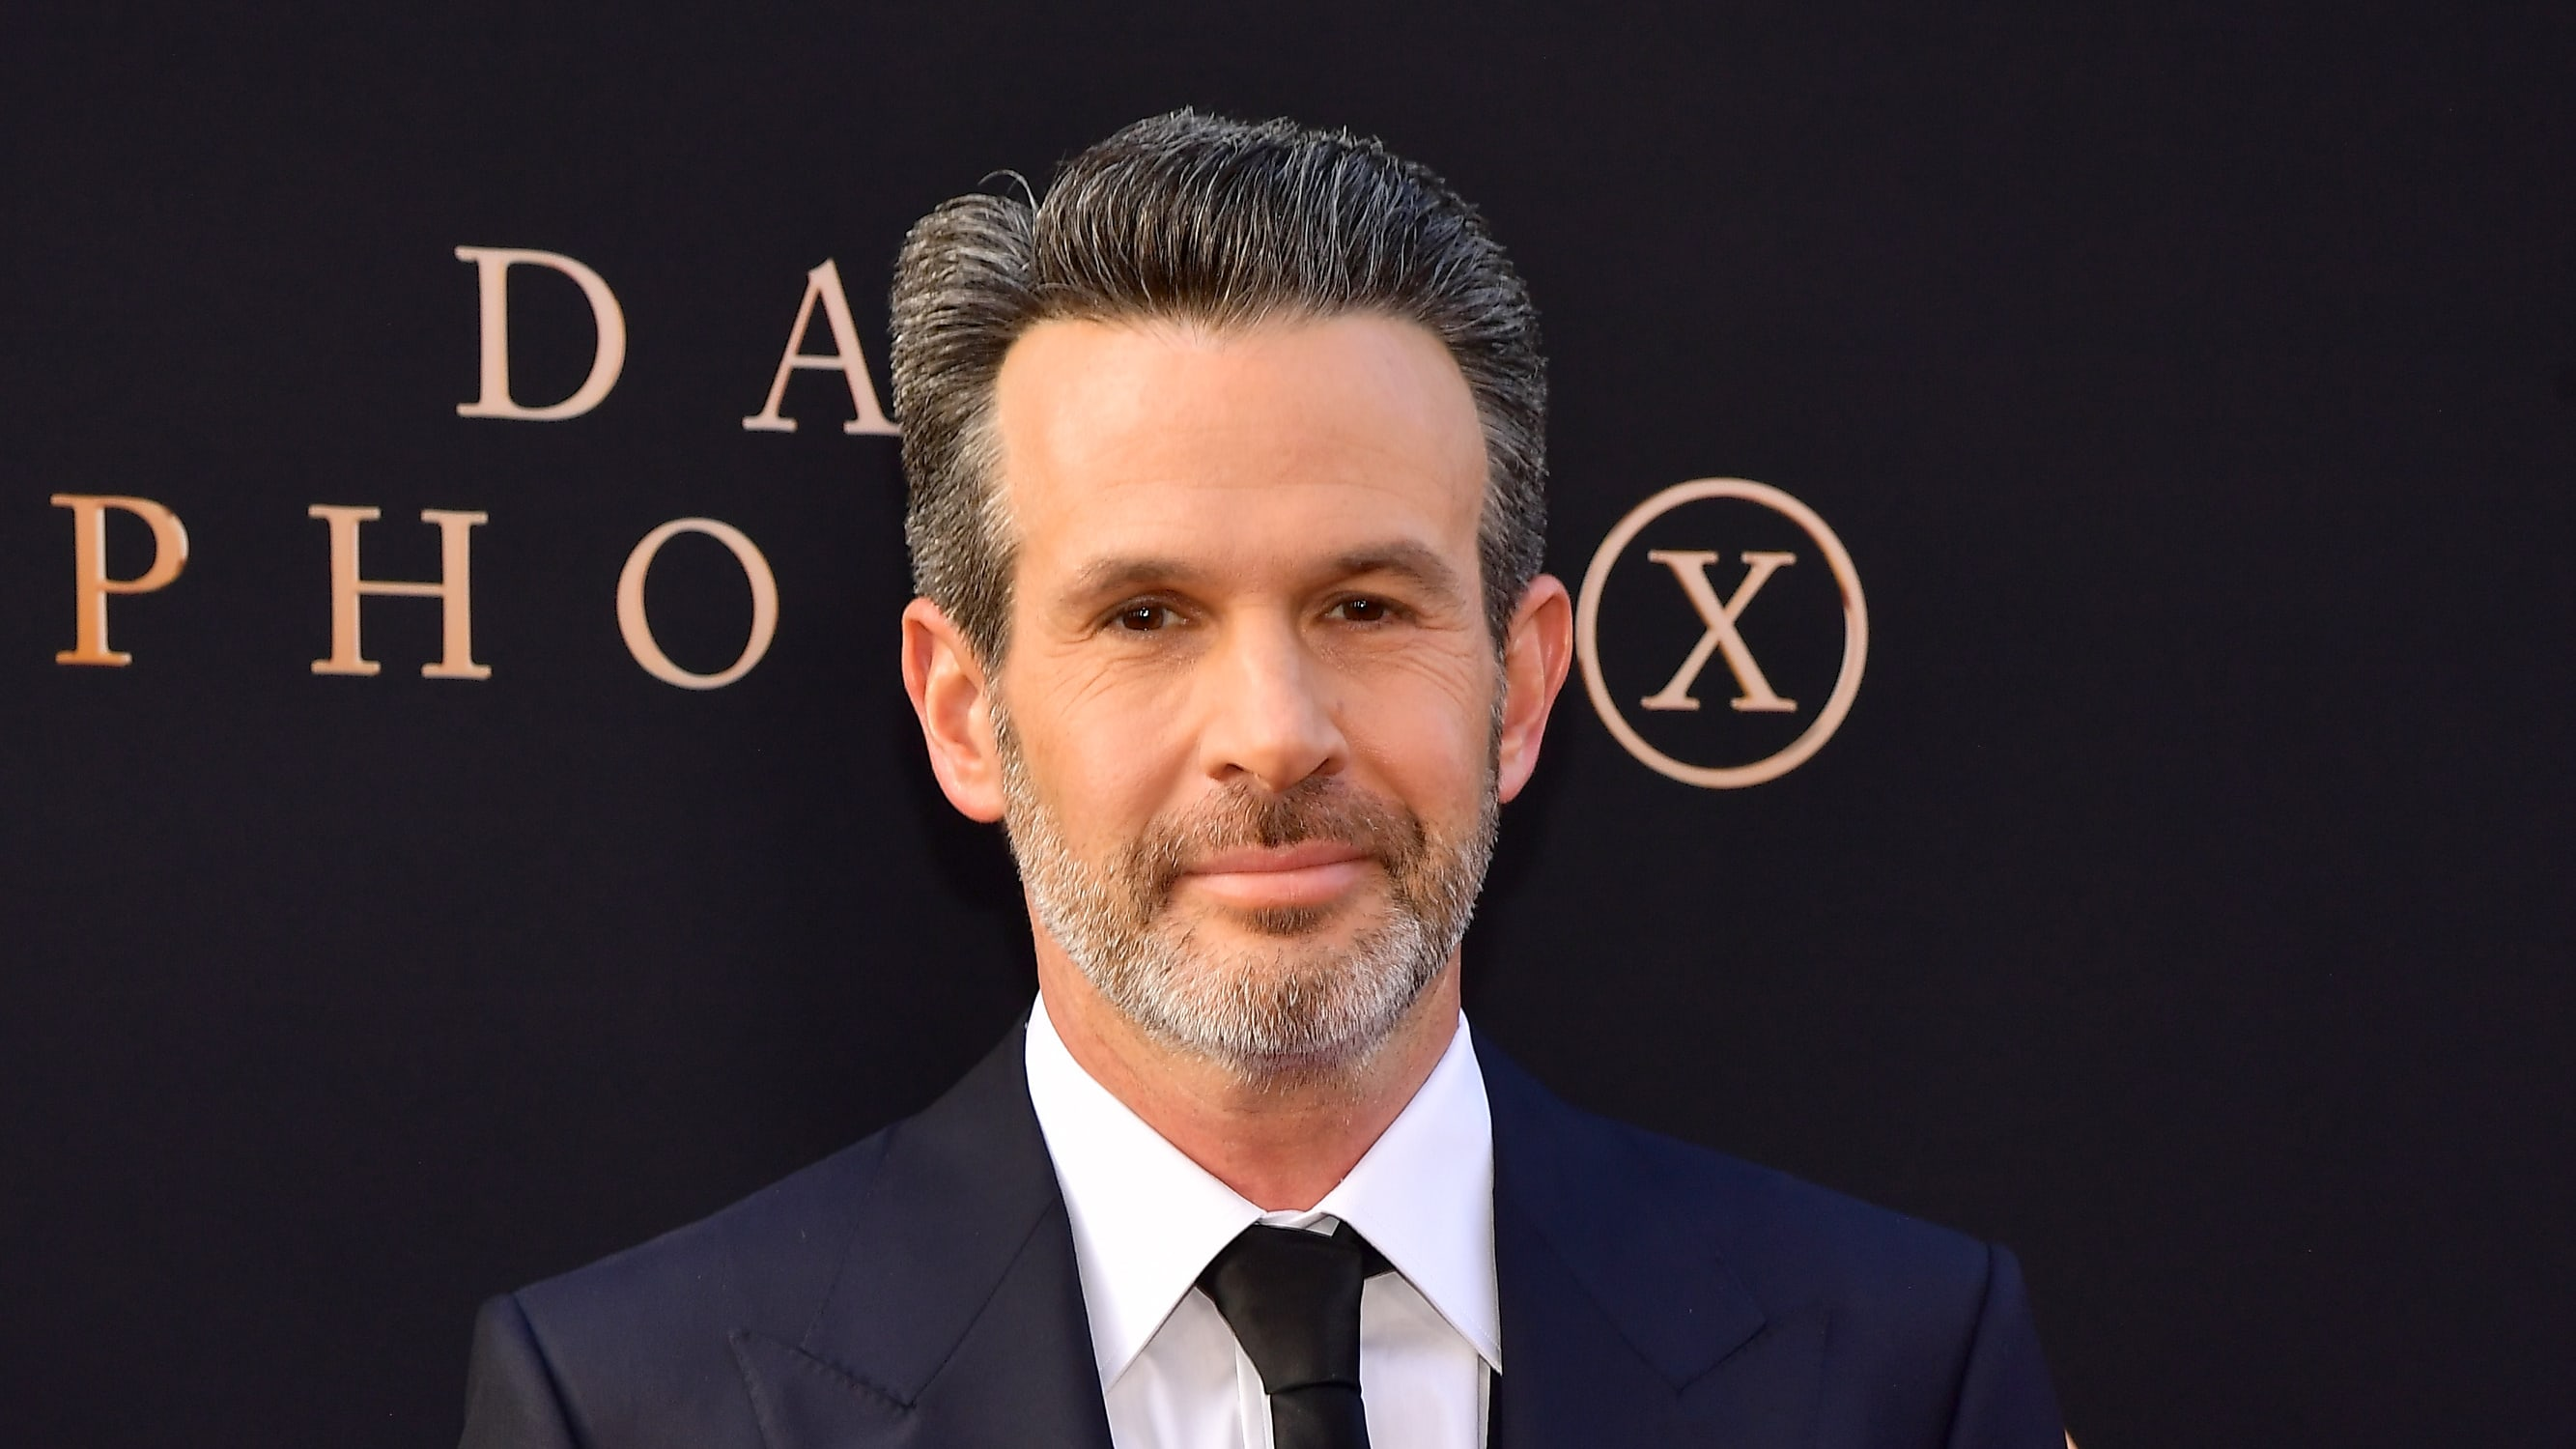 """HOLLYWOOD, CALIFORNIA - JUNE 04: Simon Kinberg attends the premiere of 20th Century Fox's """"Dark Phoenix"""" at TCL Chinese Theatre on June 04, 2019 in Hollywood, California. (Photo by Matt Winkelmeyer/Getty Images)"""